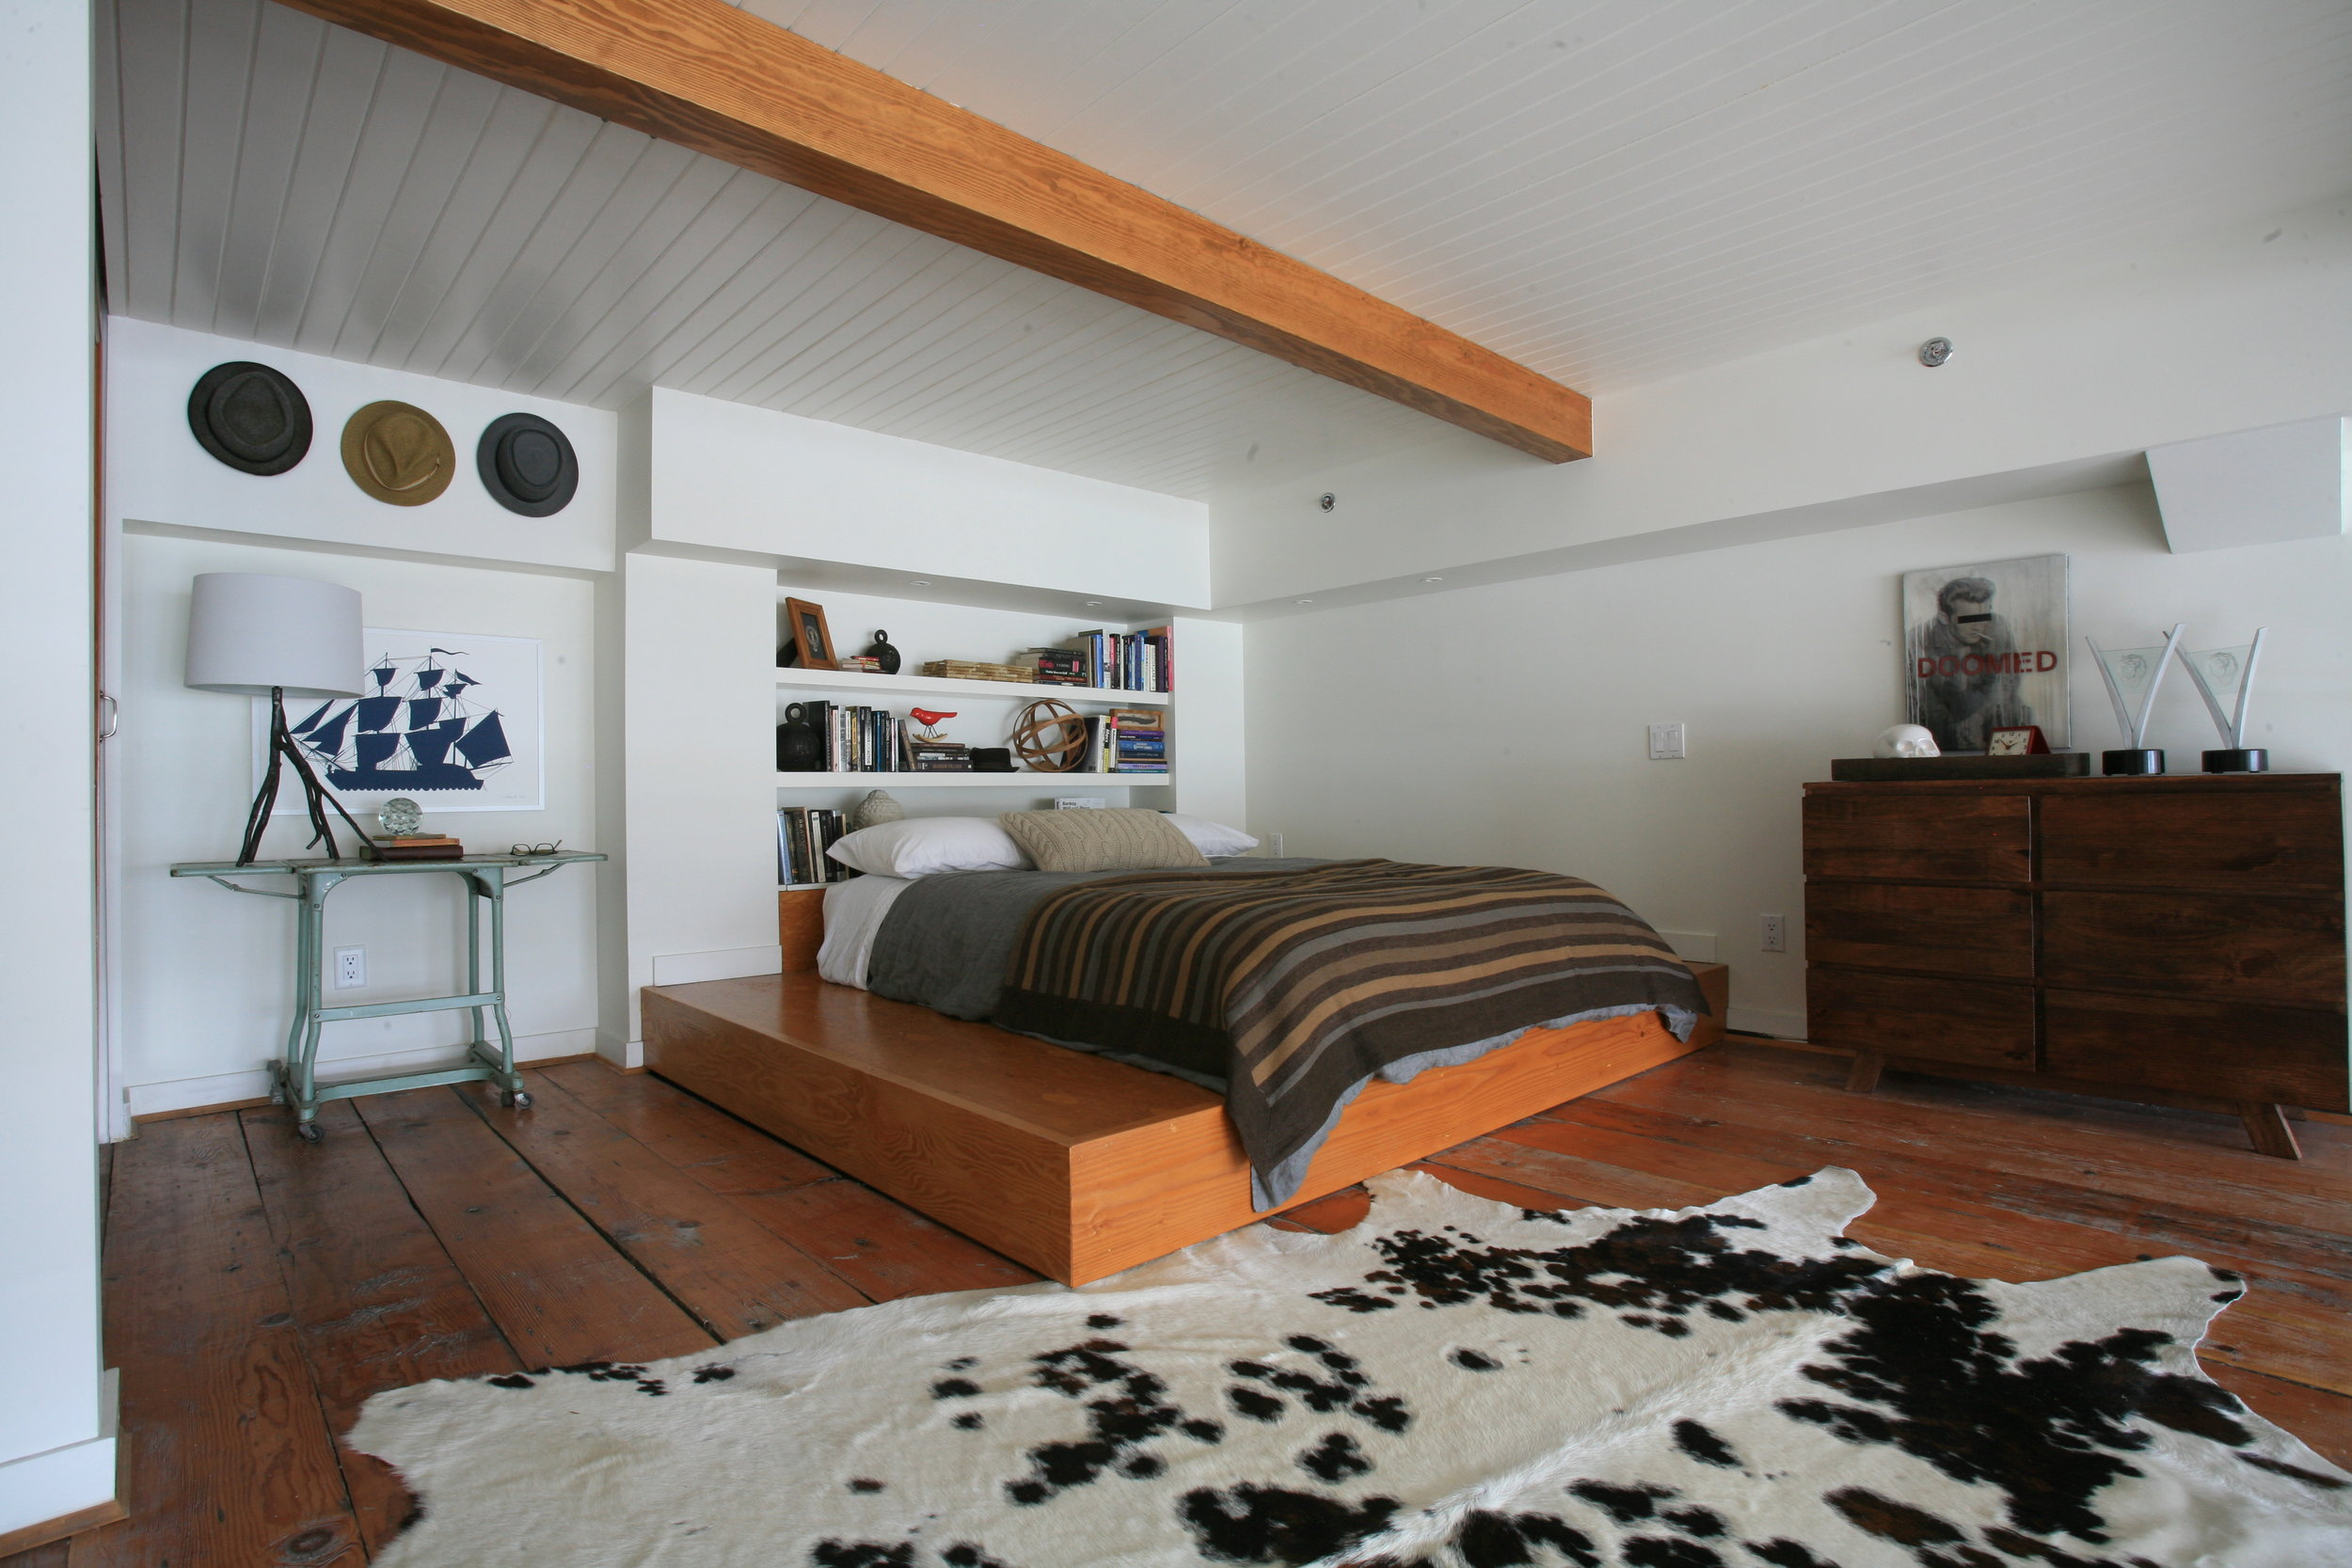 A low bed on a wooden platform with a large cow skin rug at the base of the bed and a headboard made out of shelves with books and decor collected on it beside a glass table and a dark wooden dresser.